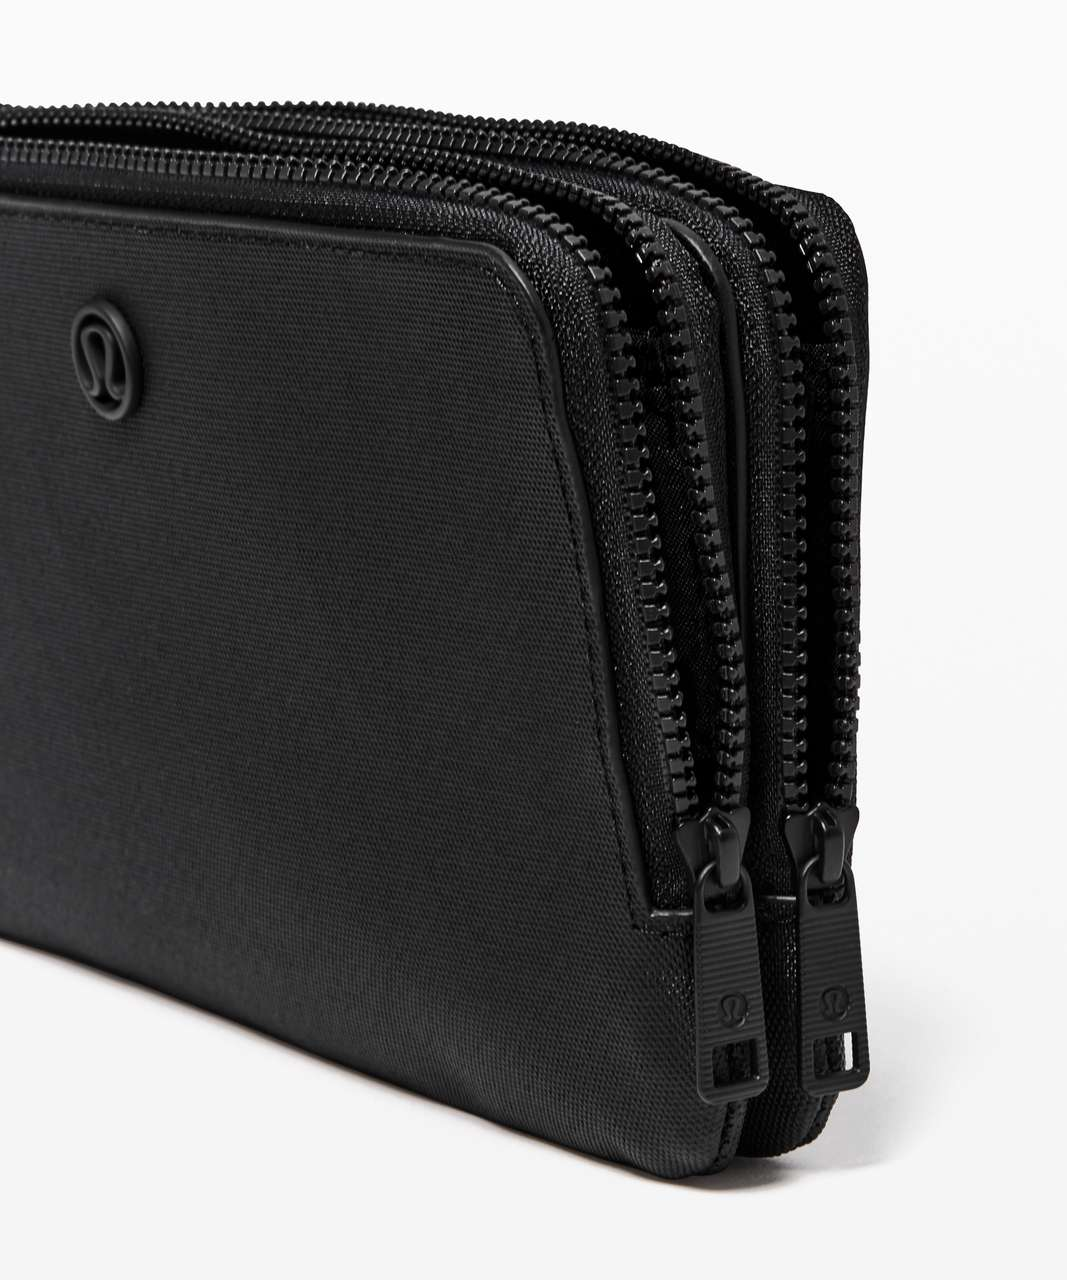 Lululemon Double Up Pouch - Black (Fourth Release)